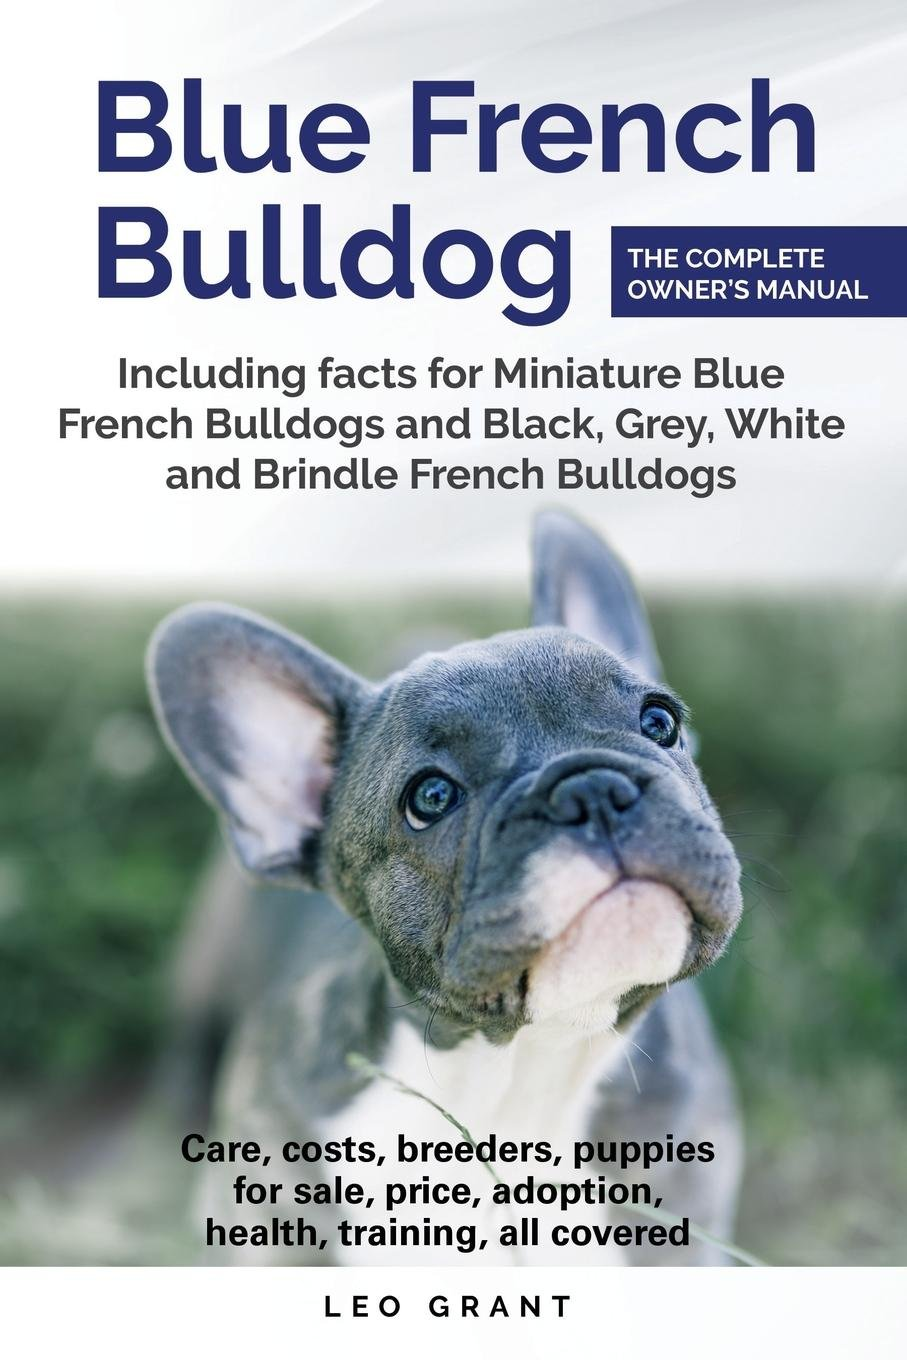 Blue French Bulldog Care Costs Price Adoption Health Training